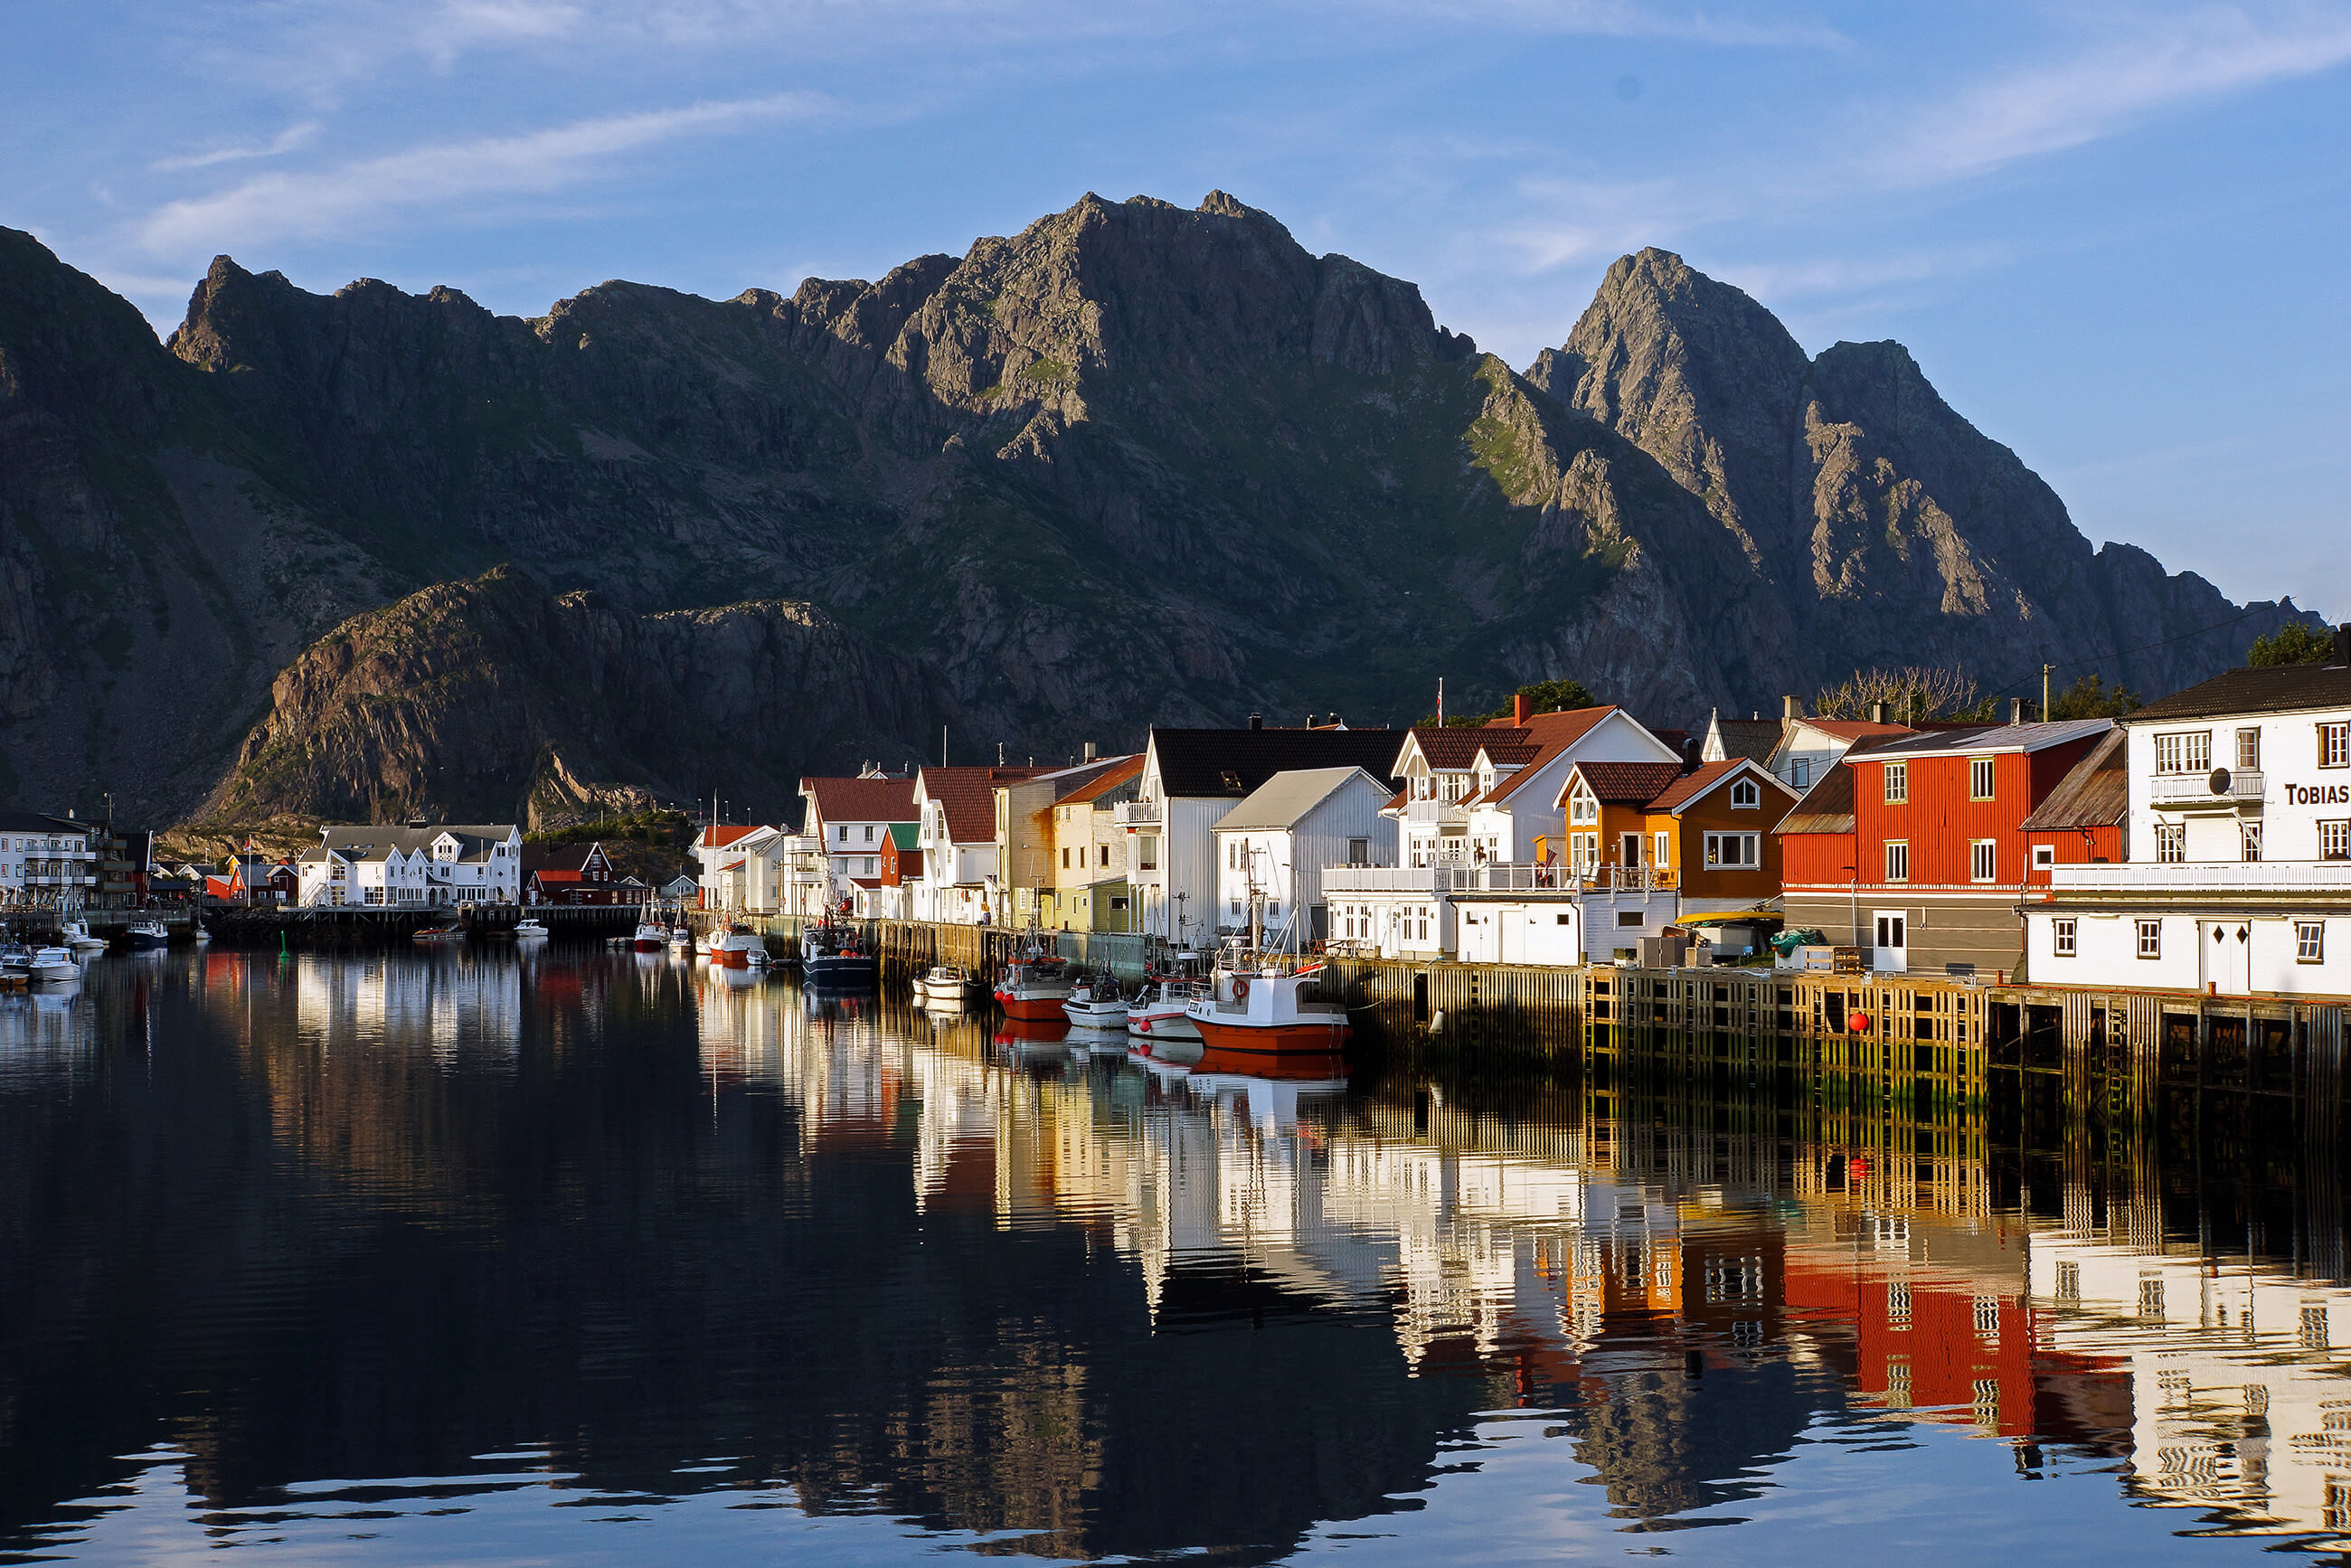 https://bubo.sk/uploads/galleries/5043/henningsvar-lofoten-norway-hgr-102615--photo_photo_competition.jpg